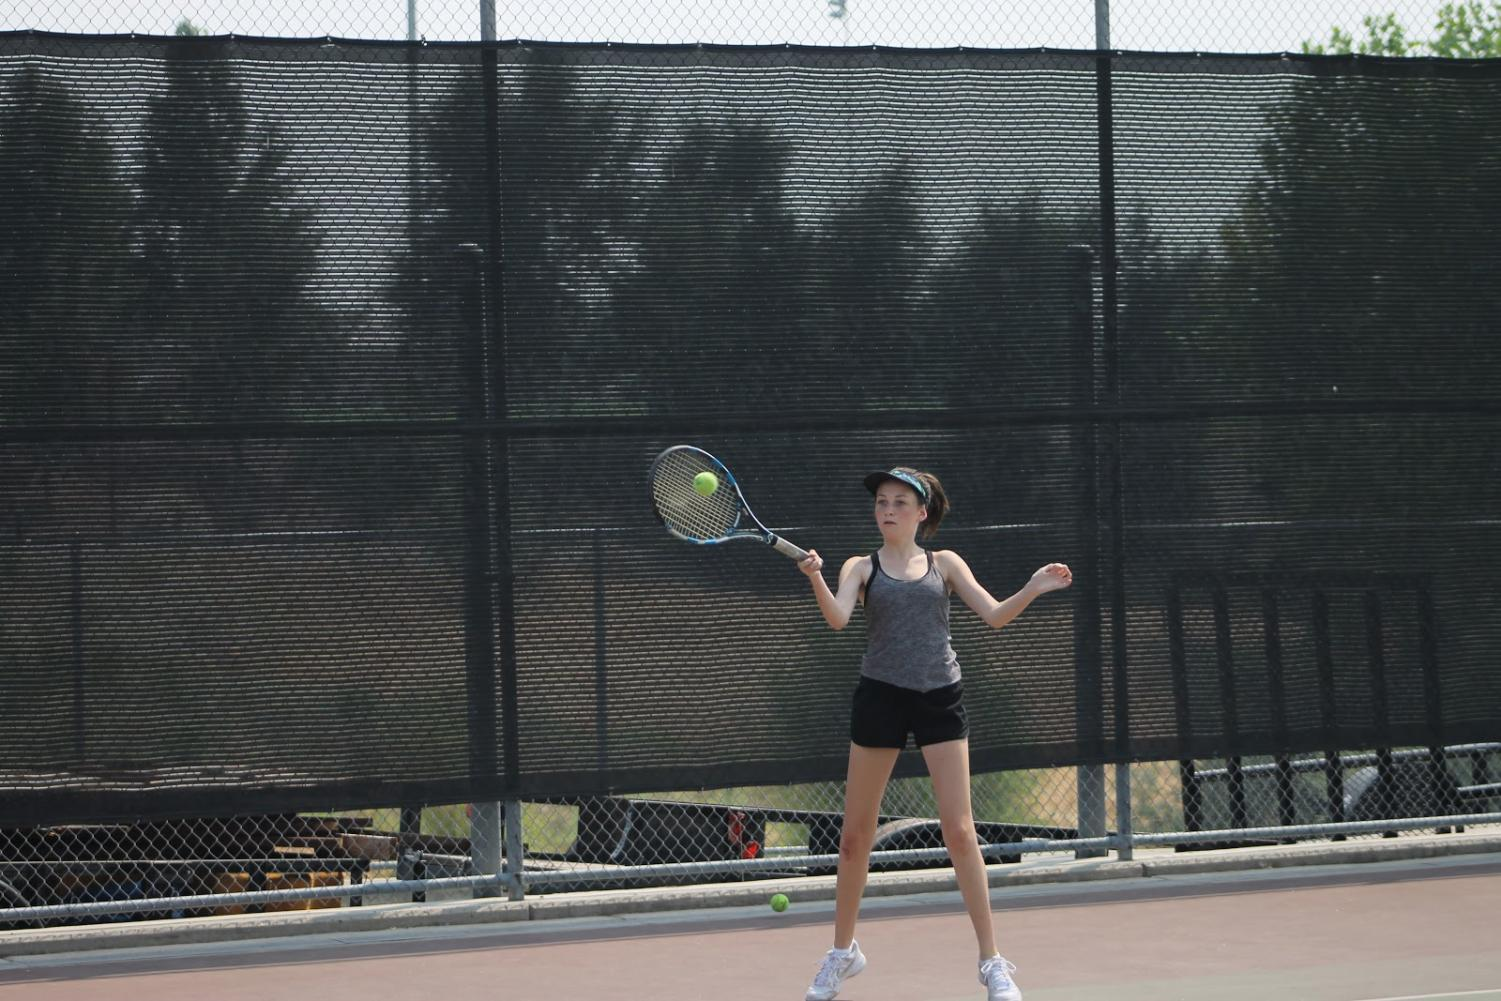 While at practice Aug. 9, Gabby Mehren receives and returns a serve during warm-ups. Photo by Brenden Jacoby